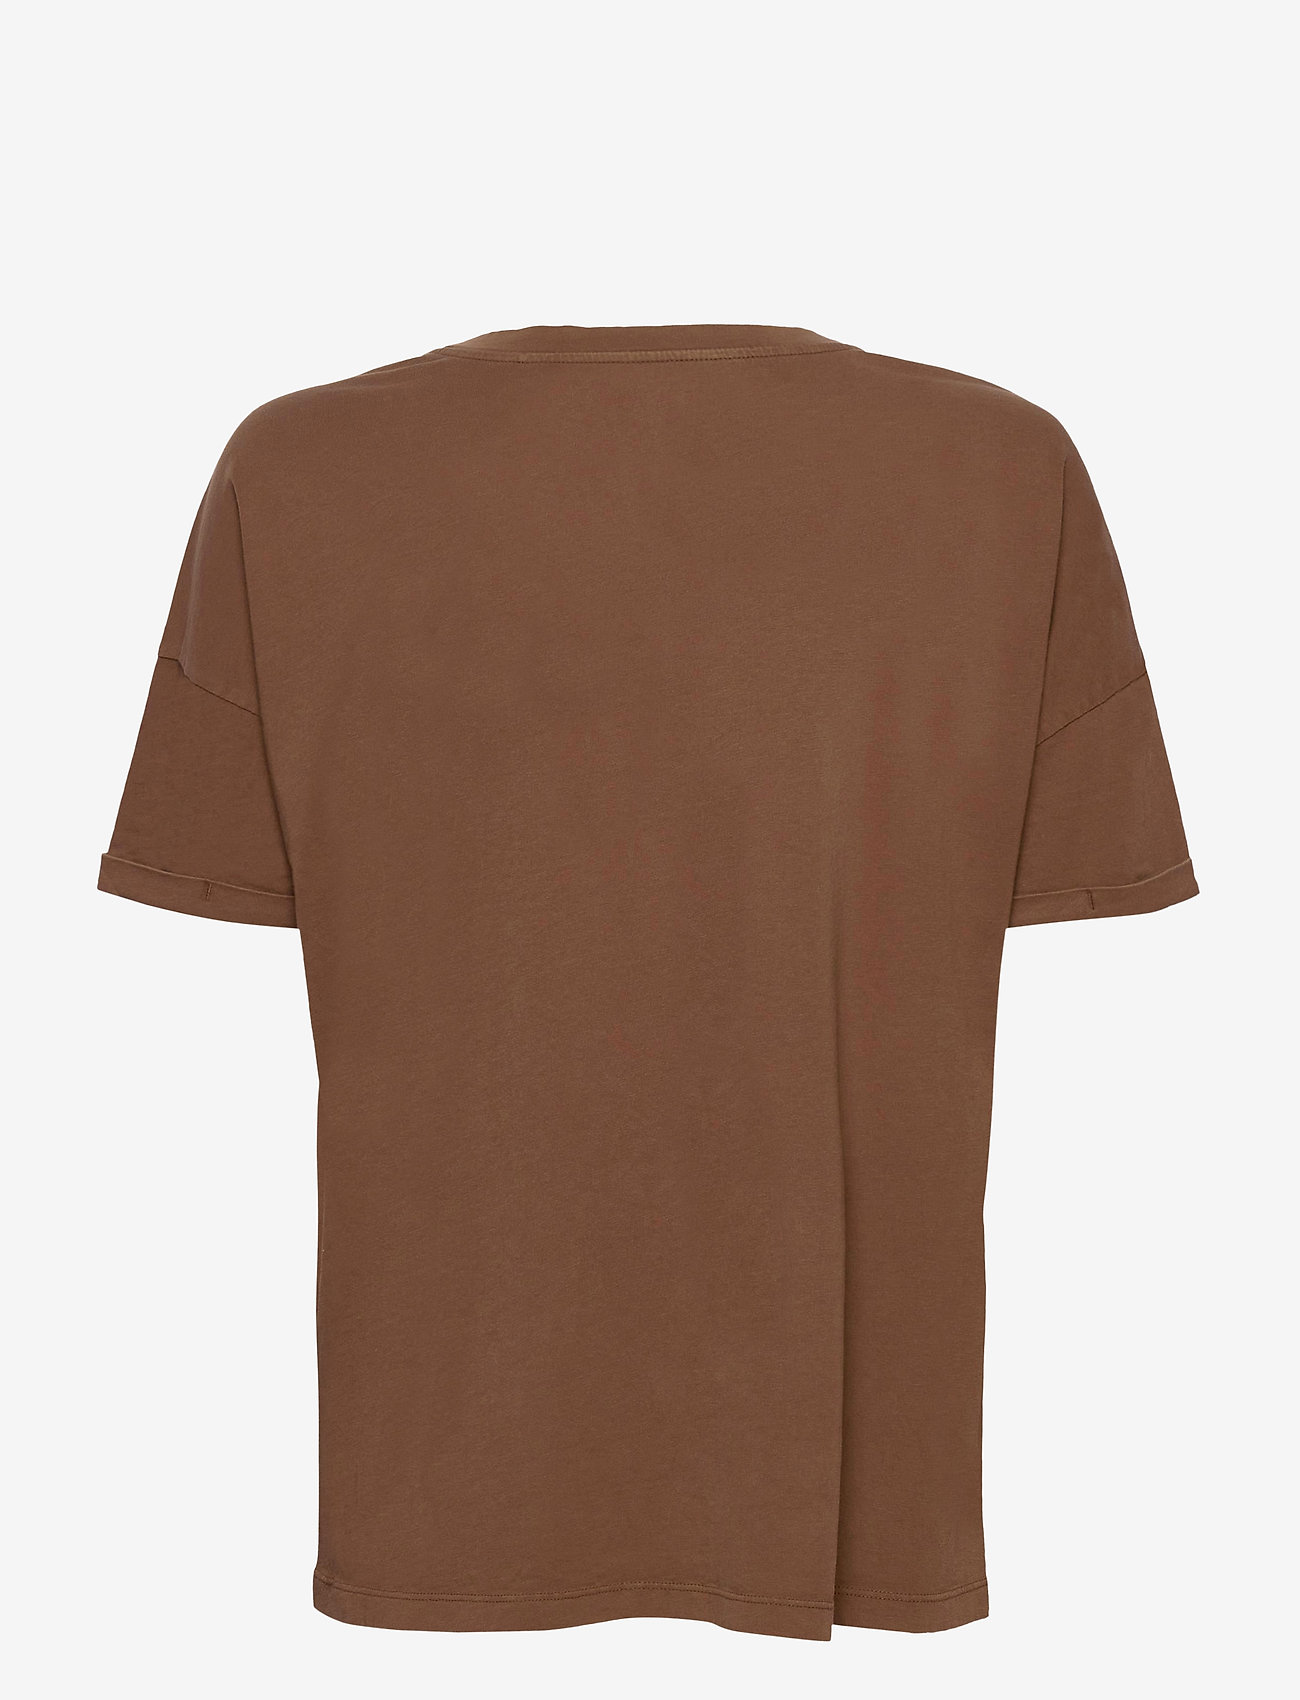 Esprit Casual - T-Shirts - t-shirts - rust brown - 1